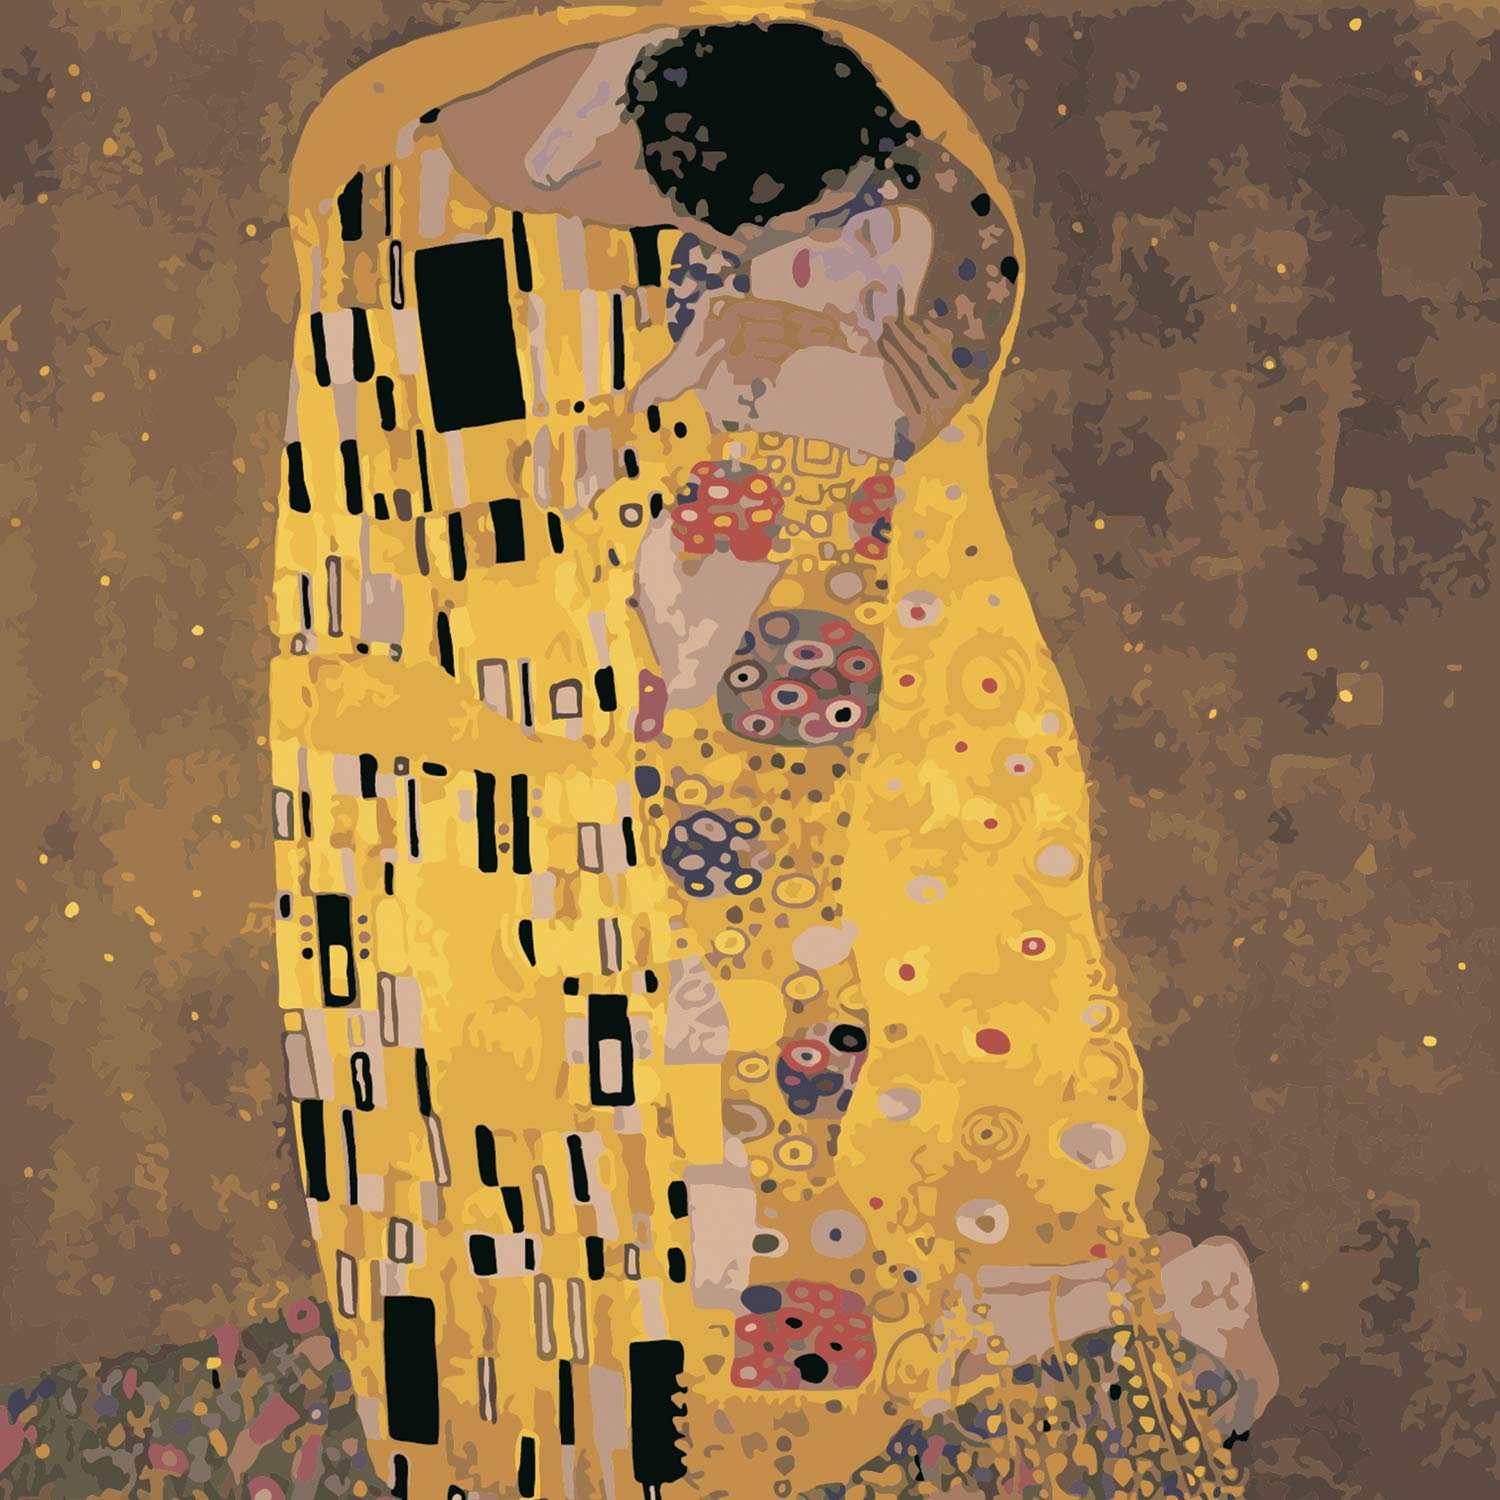 [Wooden Framed] DIY Painting, Paint by Number Kits for Adults -''Kiss'' by Gustav Klimt - Includes Brushes, Paints and Numbered Canvas - 16x20 Inch - Great for Kids and Adults - by Tsvetnoy by Tsvetnoy - the world of bright ideas